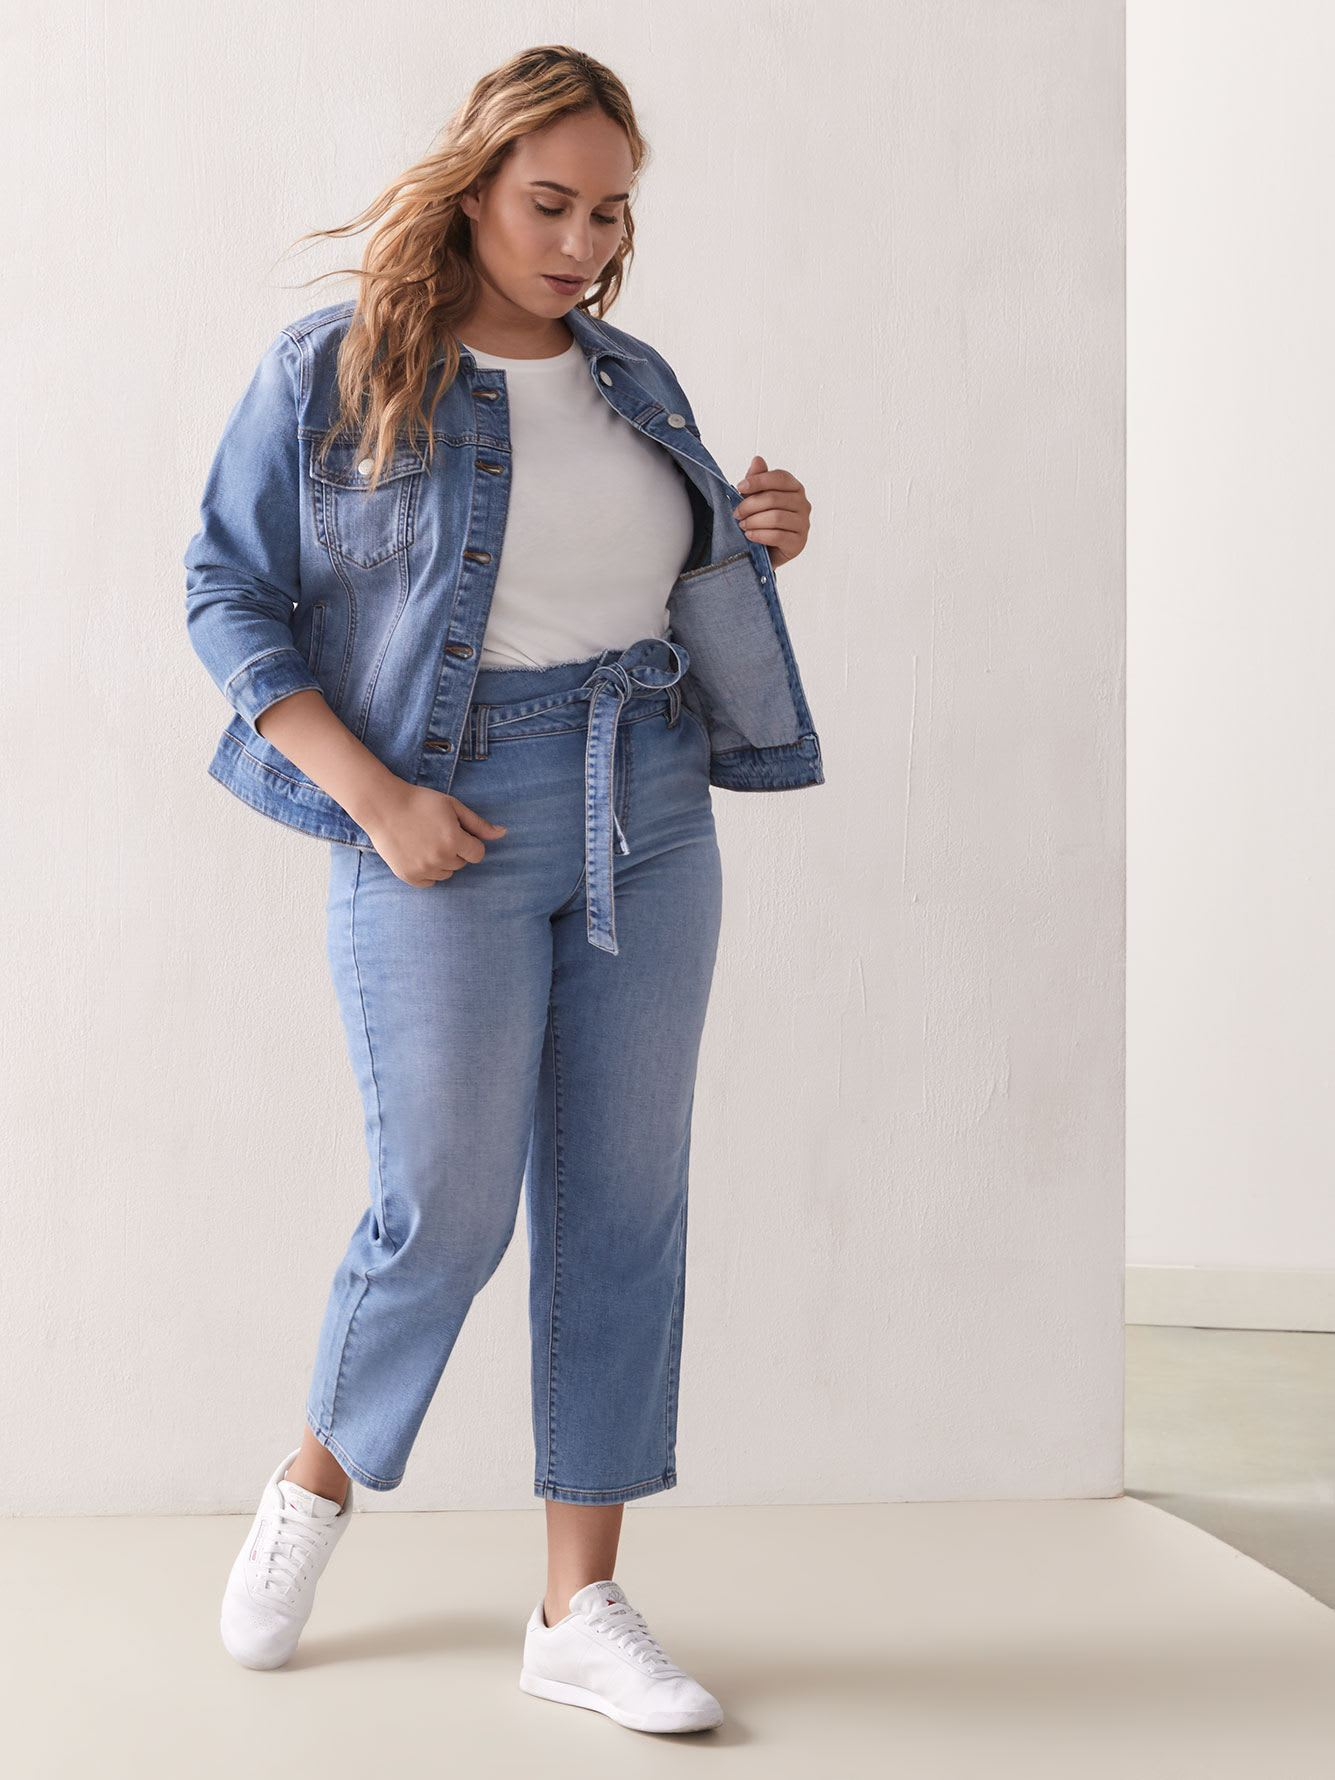 Classic Denim Jacket - Addition Elle